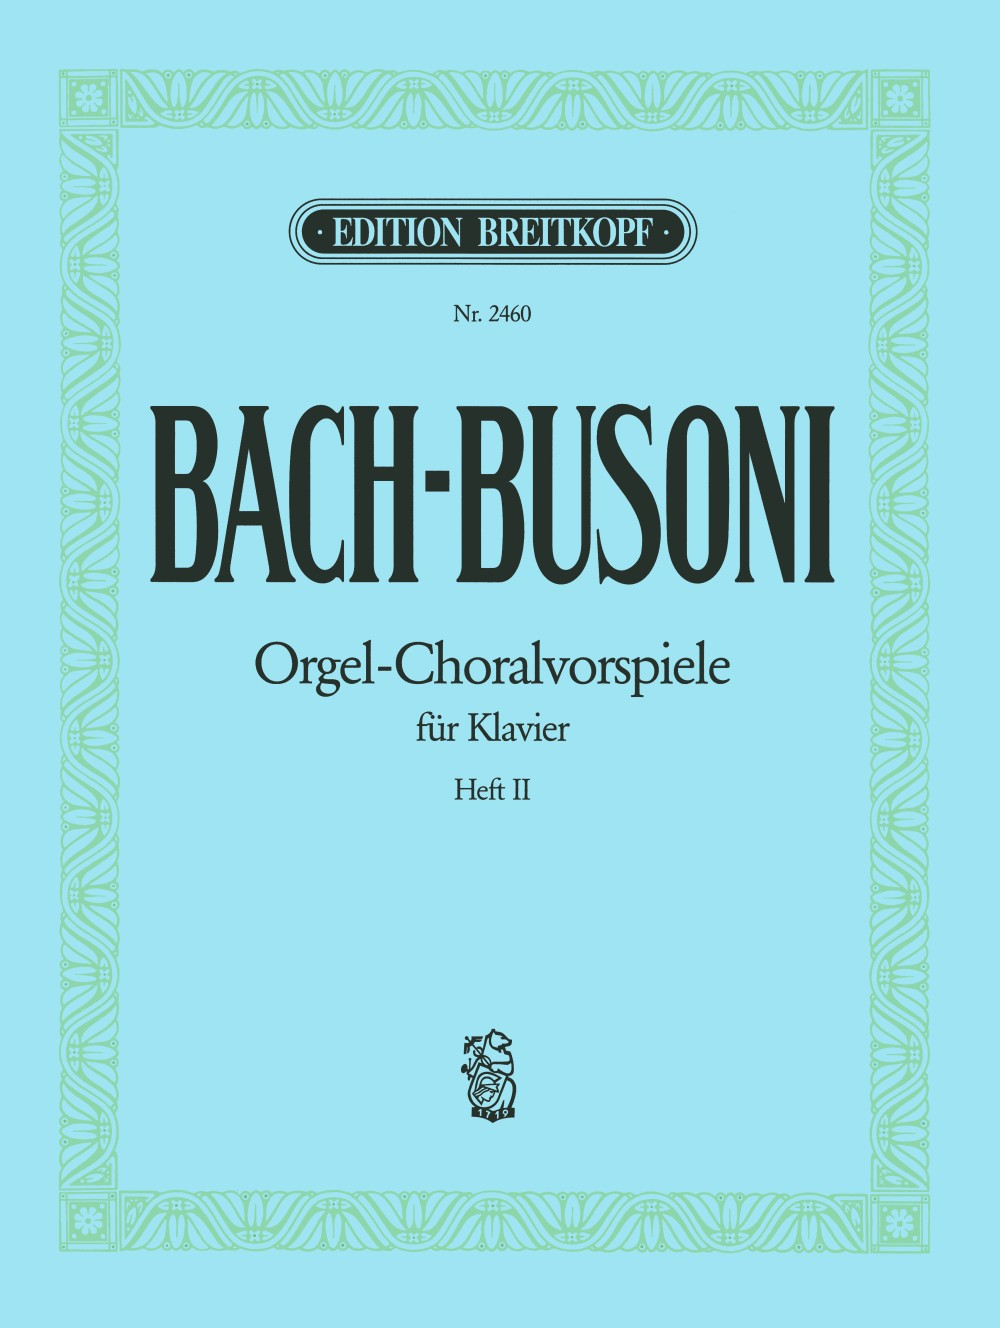 Bach-Busoni: Chorale Preludes for Piano - Volume 2 (BWV 617, 637, 705, 615, 665)